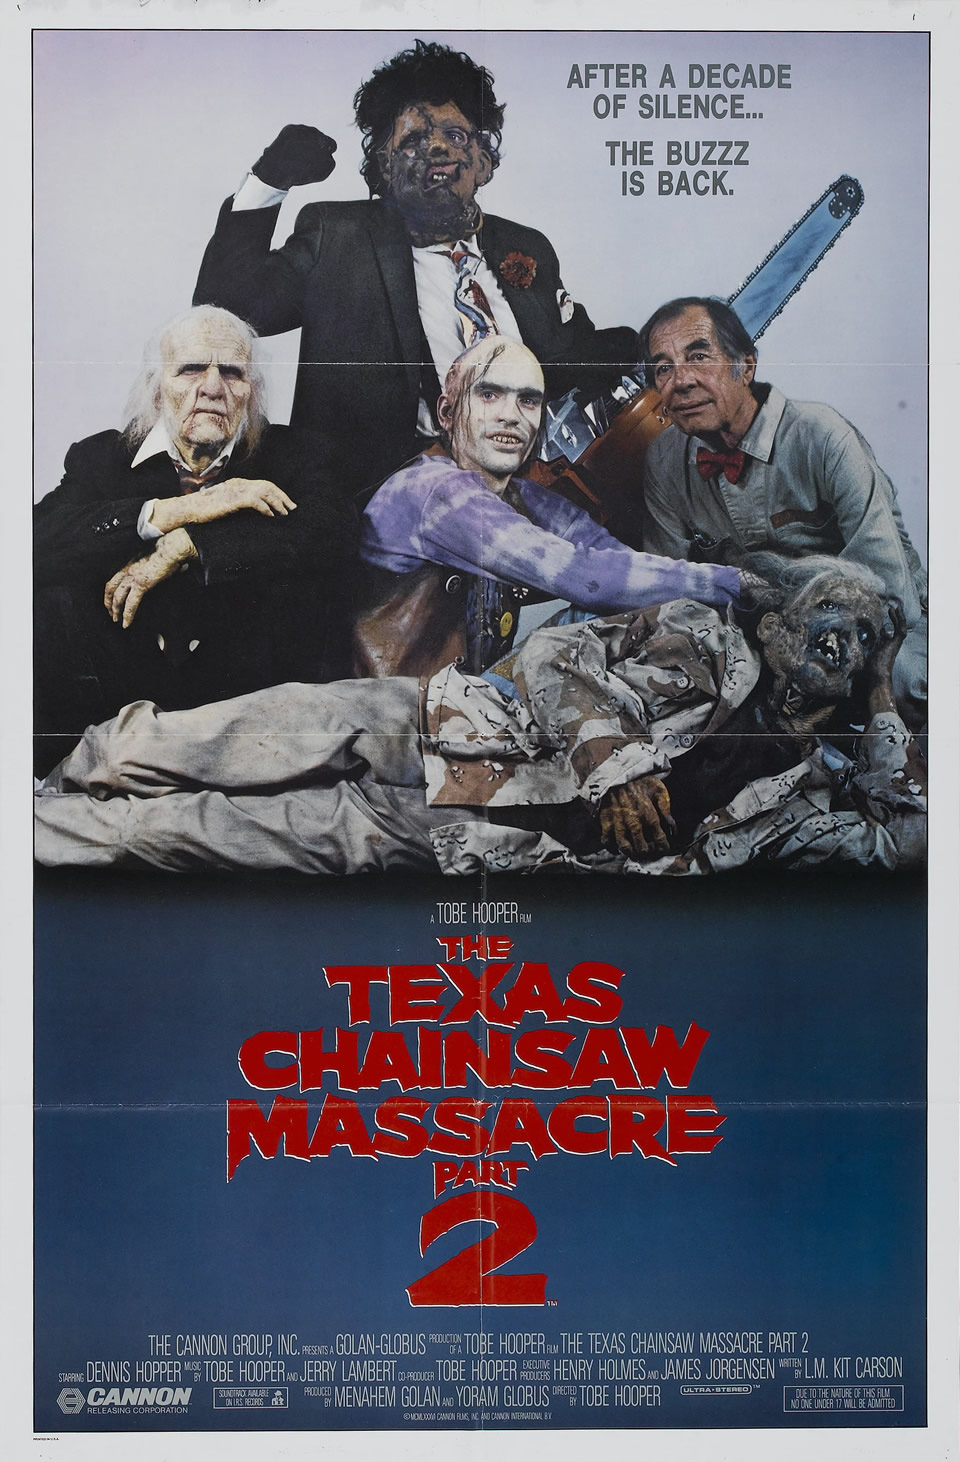 The Texas Chainsaw Massacre Part 2 (1986)